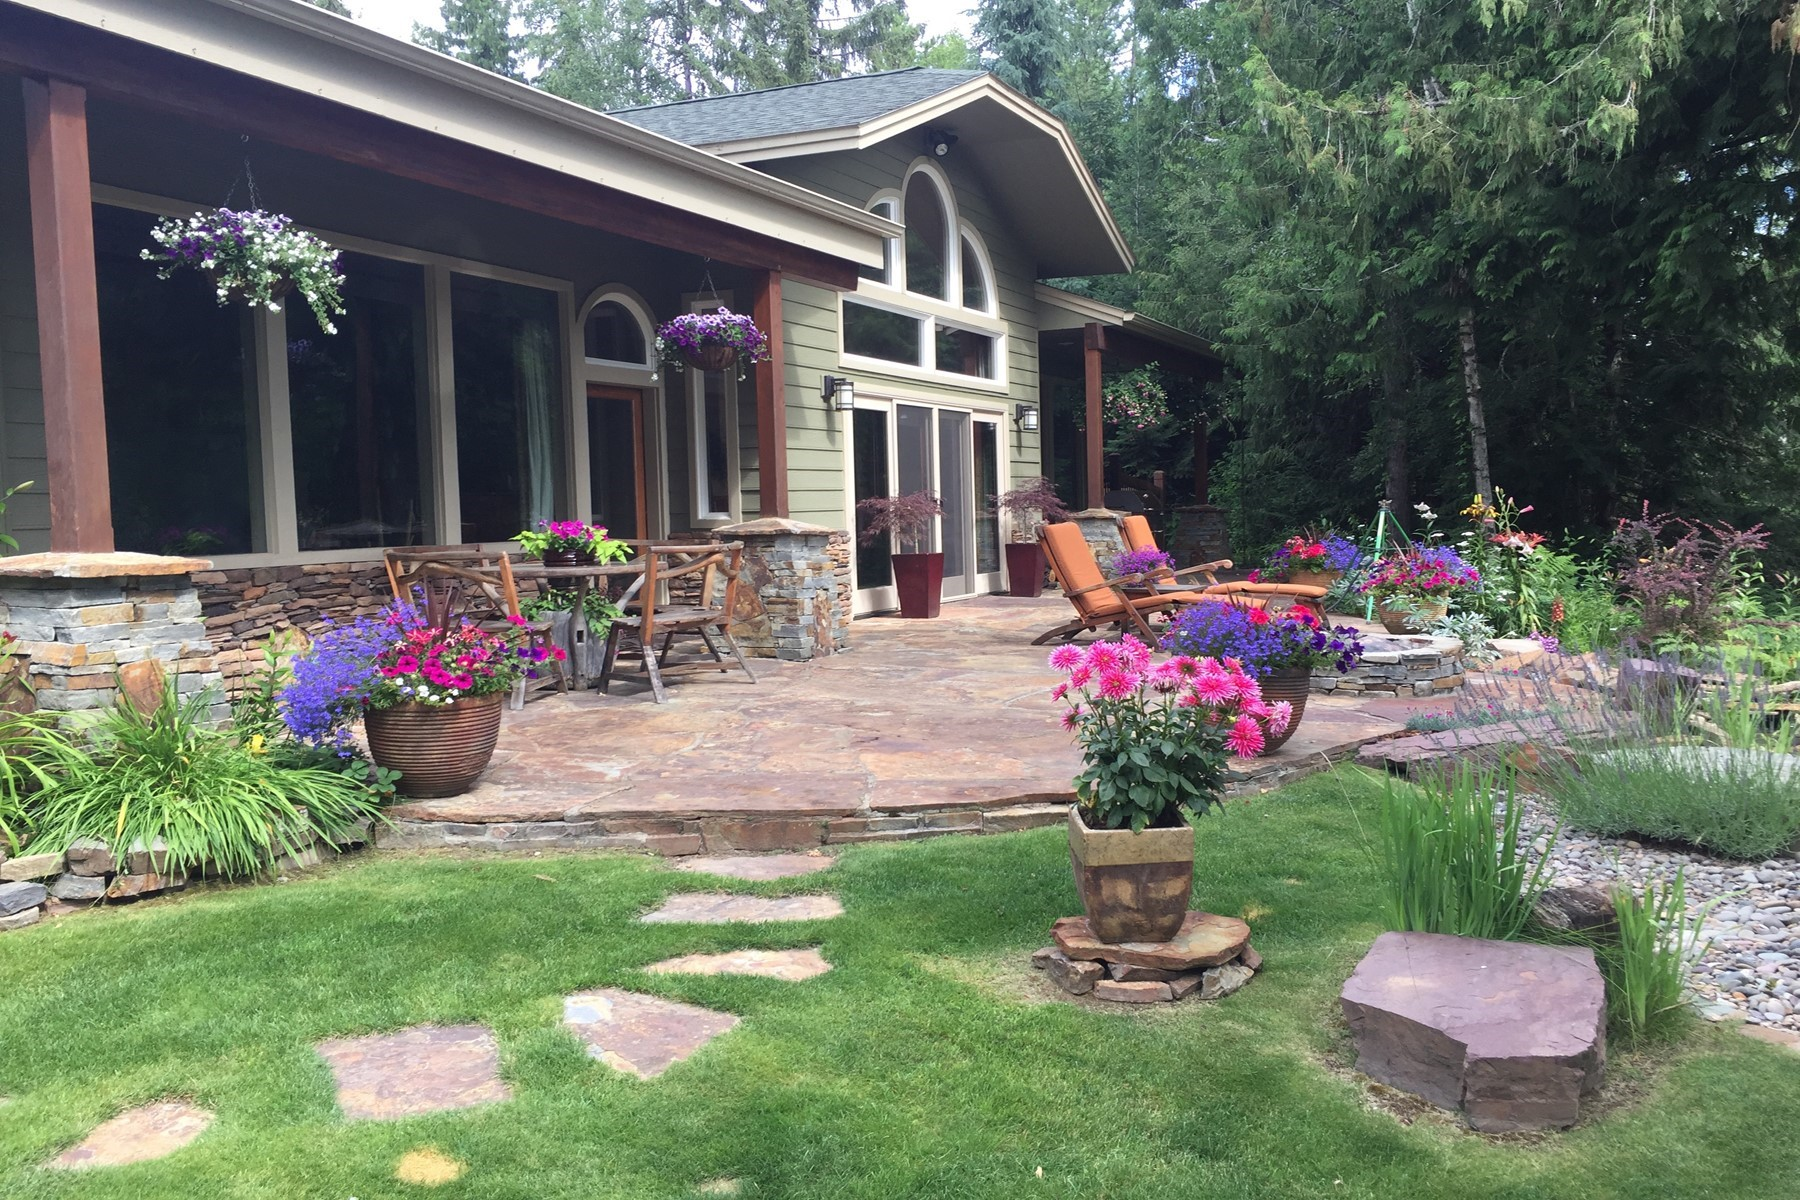 Single Family Home for Active at Home & Acreage On The Pack River 222 Laricina Way, Sandpoint, Idaho 83864 United States